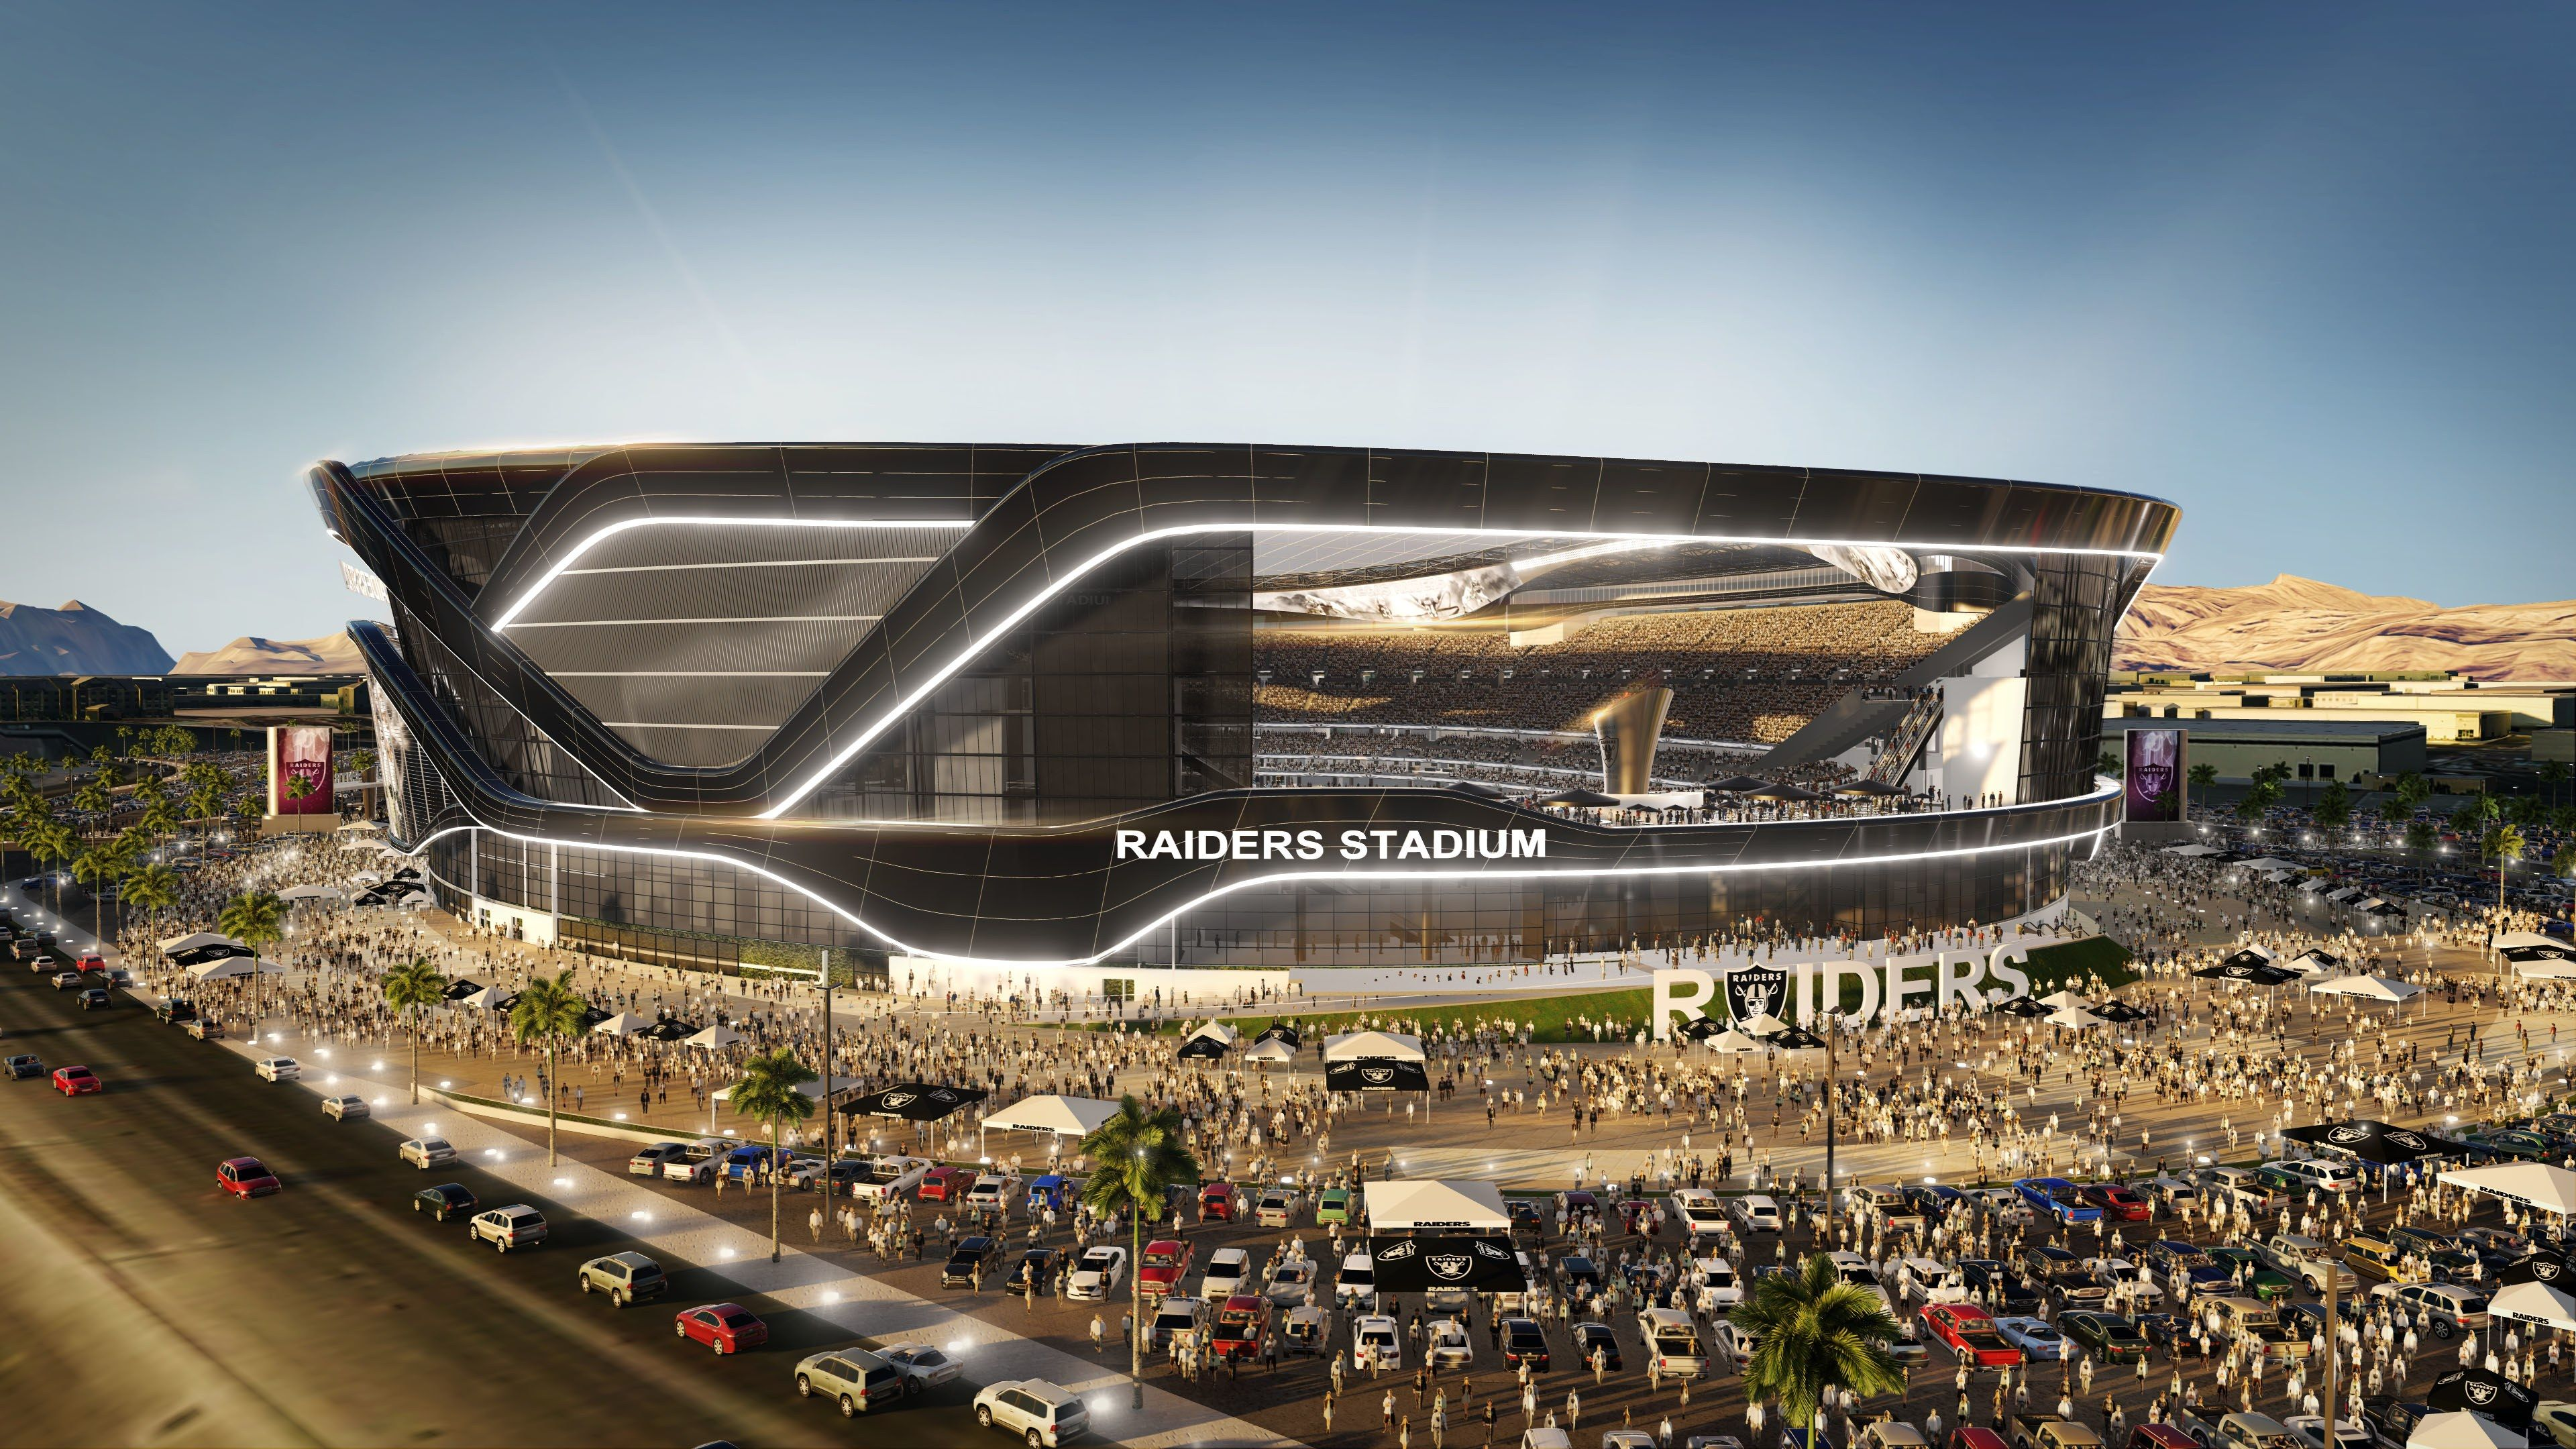 The Oakland Raiders Move To Las Vegas Could Give Them The Nfl S Most Innovative Stadium Stadium Architecture Stadium Design Raiders